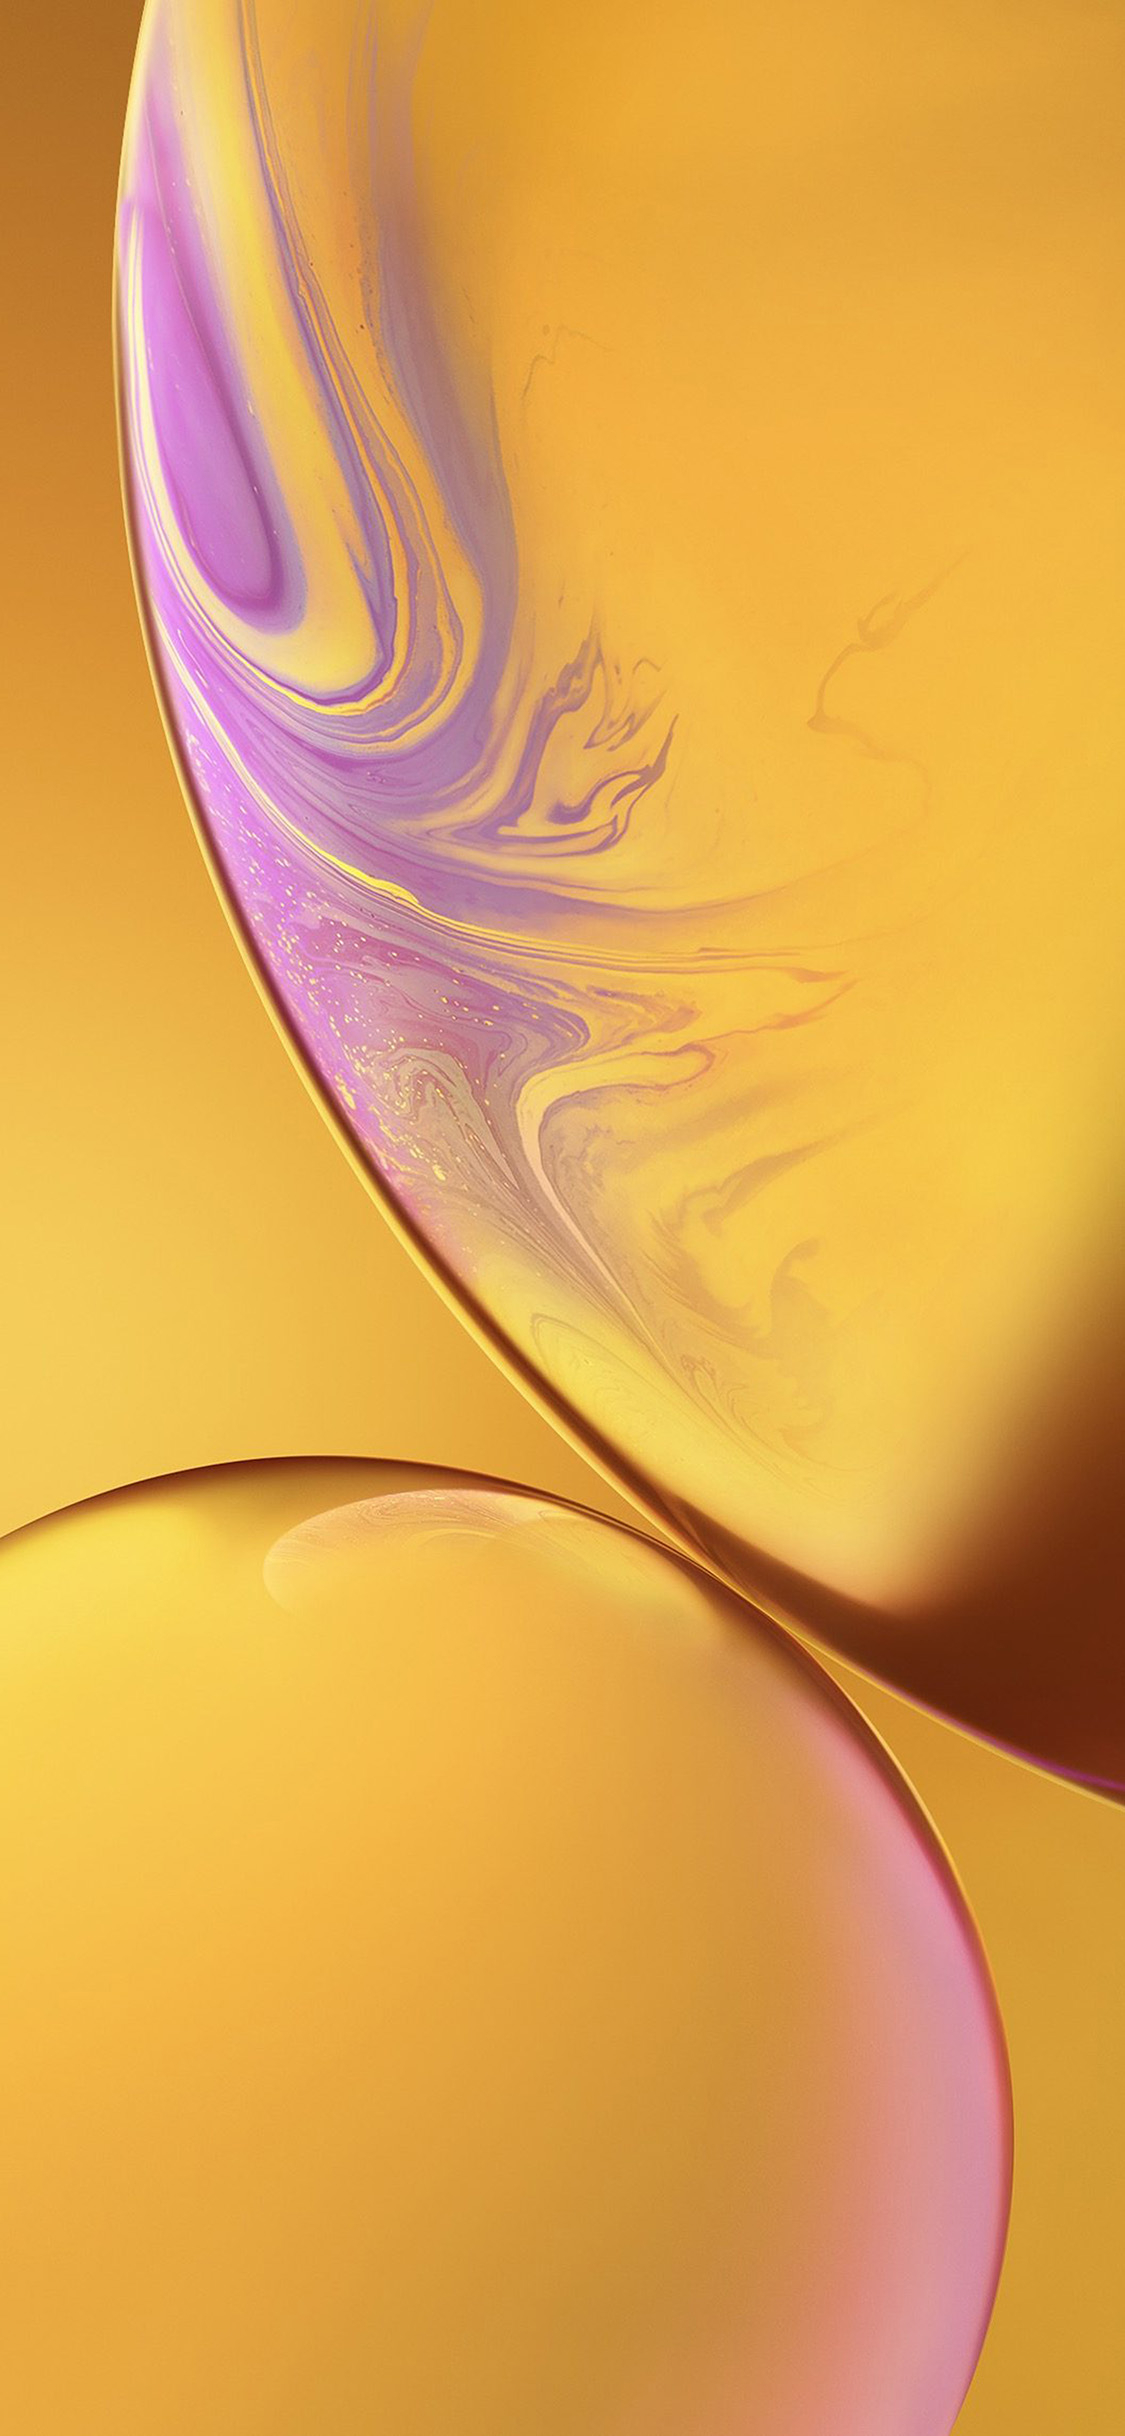 bg35 iphone xs max apple official art yellow bubble